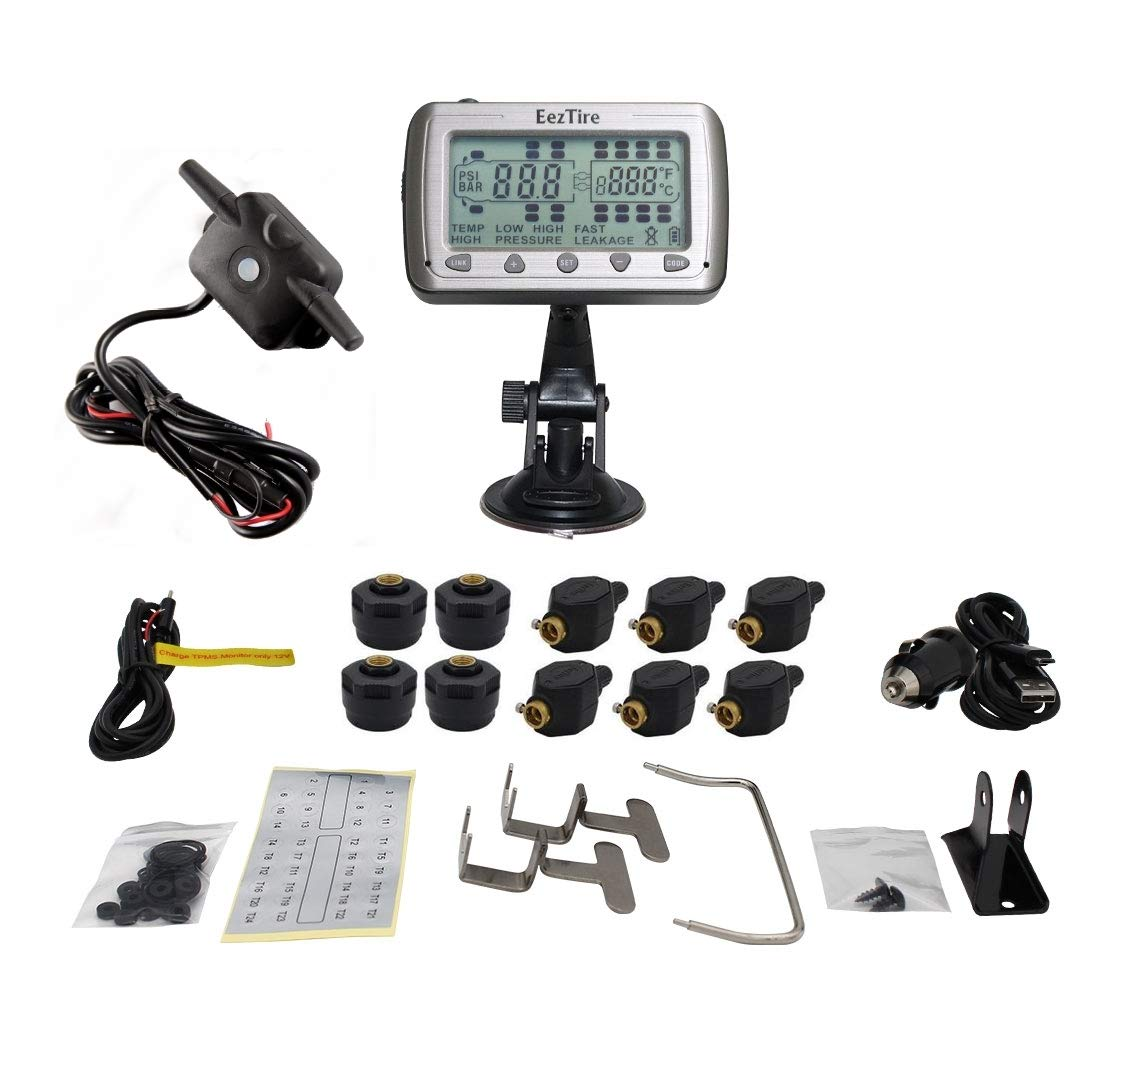 EezTire-TPMS10MIXB Real Time/24x7 Tire Pressure Monitoring System - 10 Mix-Sensors + Booster, incl. 3-Year Warranty